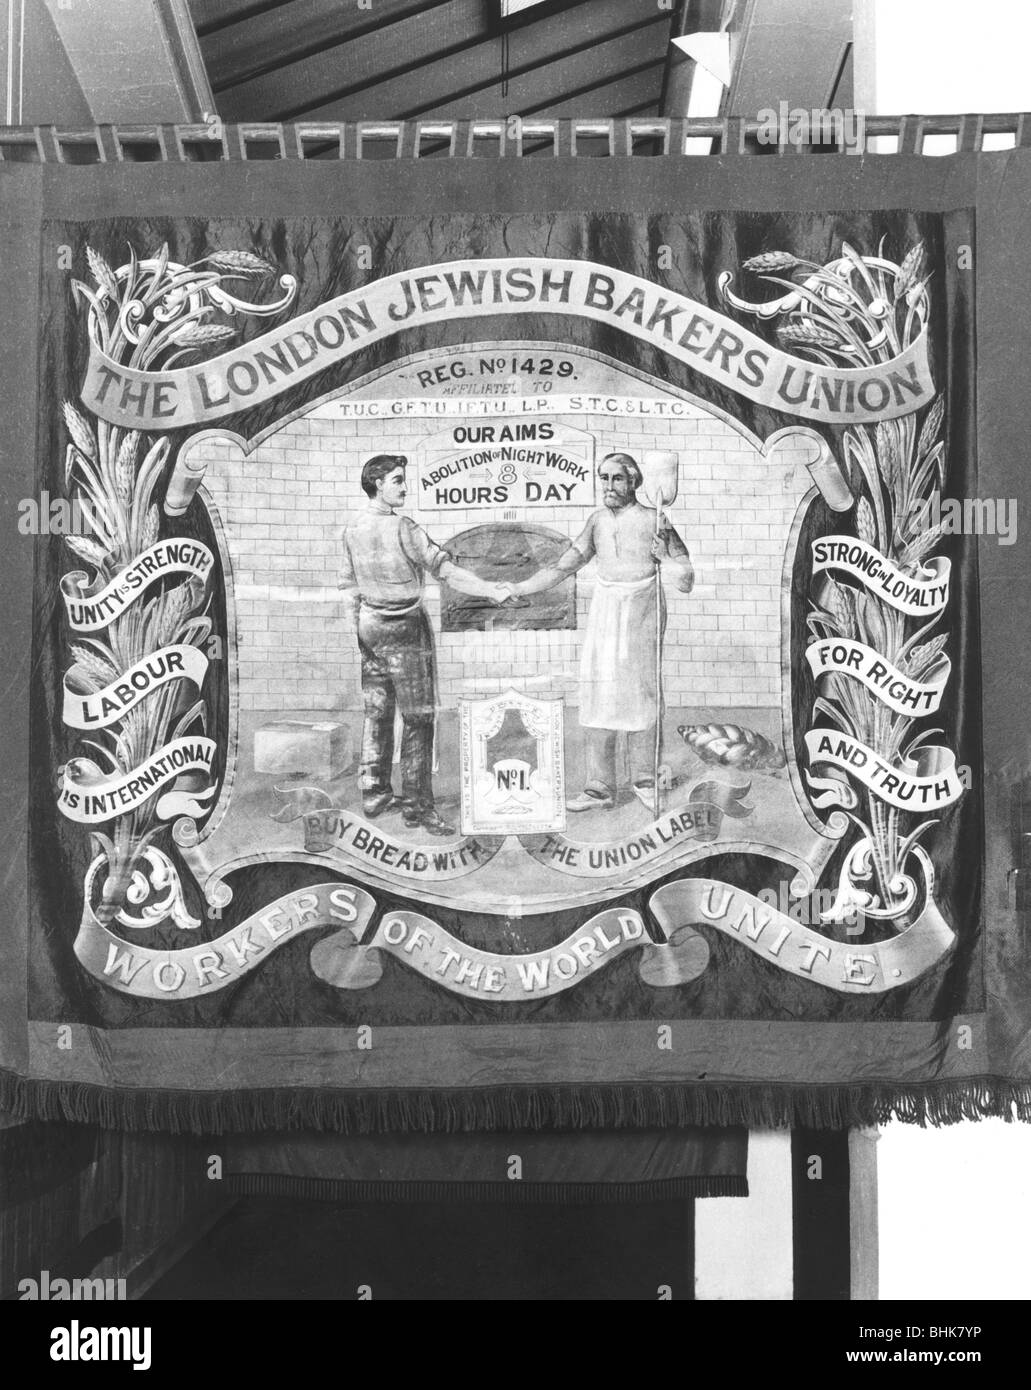 The London Jewish Bakers' Union Banner, (c1900?). - Stock Image